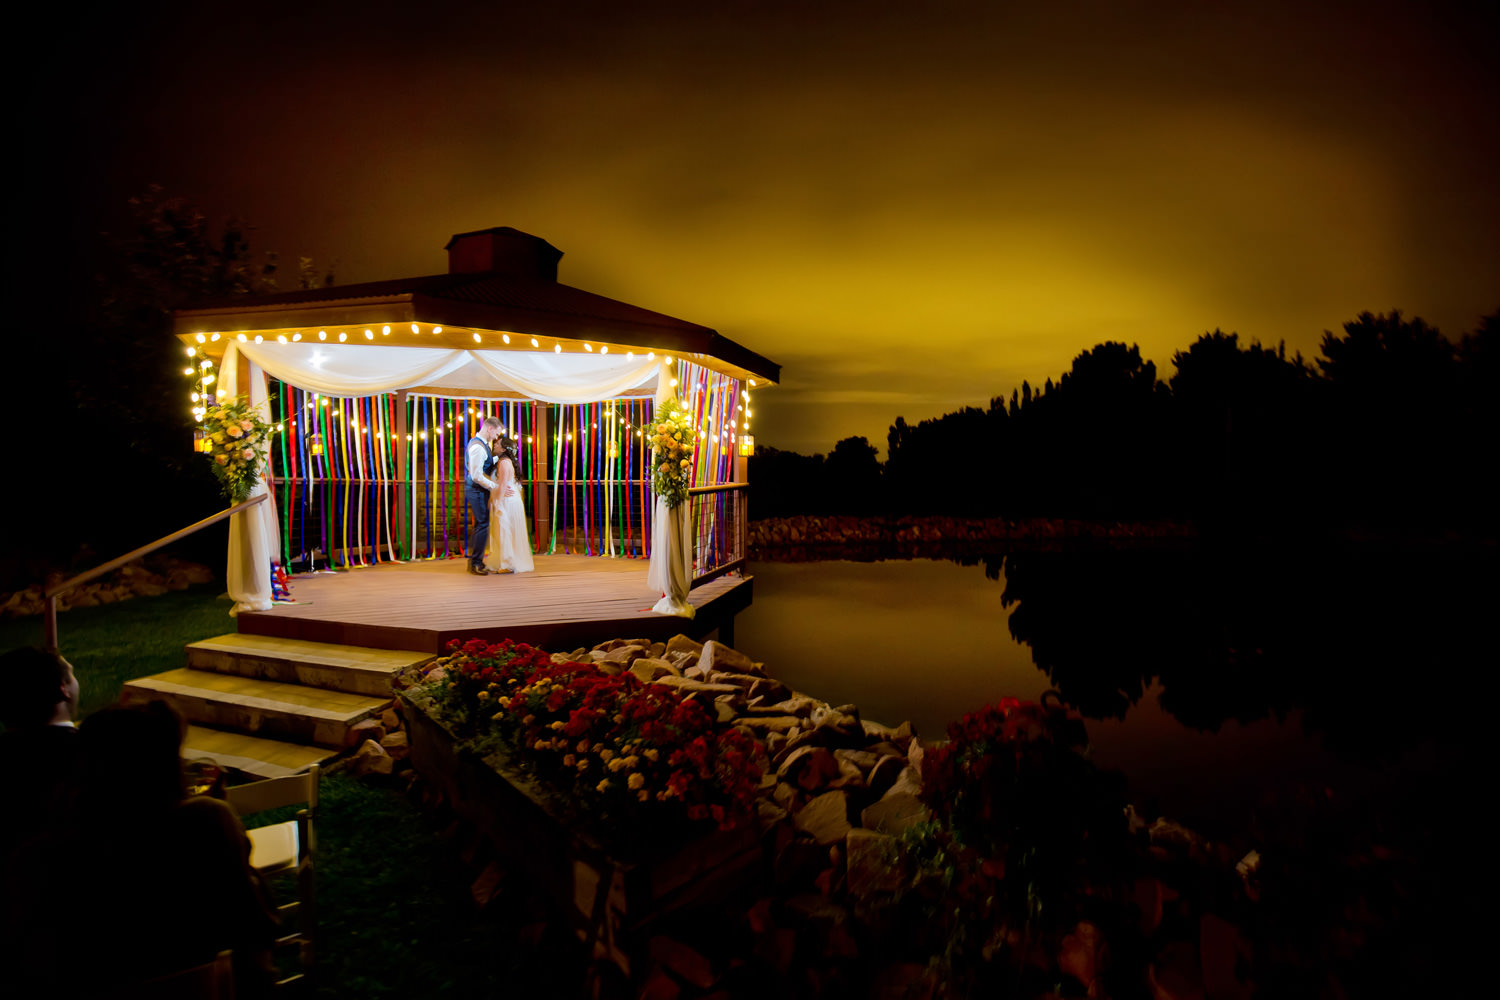 Bride and groom relax under moonlight under during a preserve and bingham hill wedding near Fort Collins, Colorado